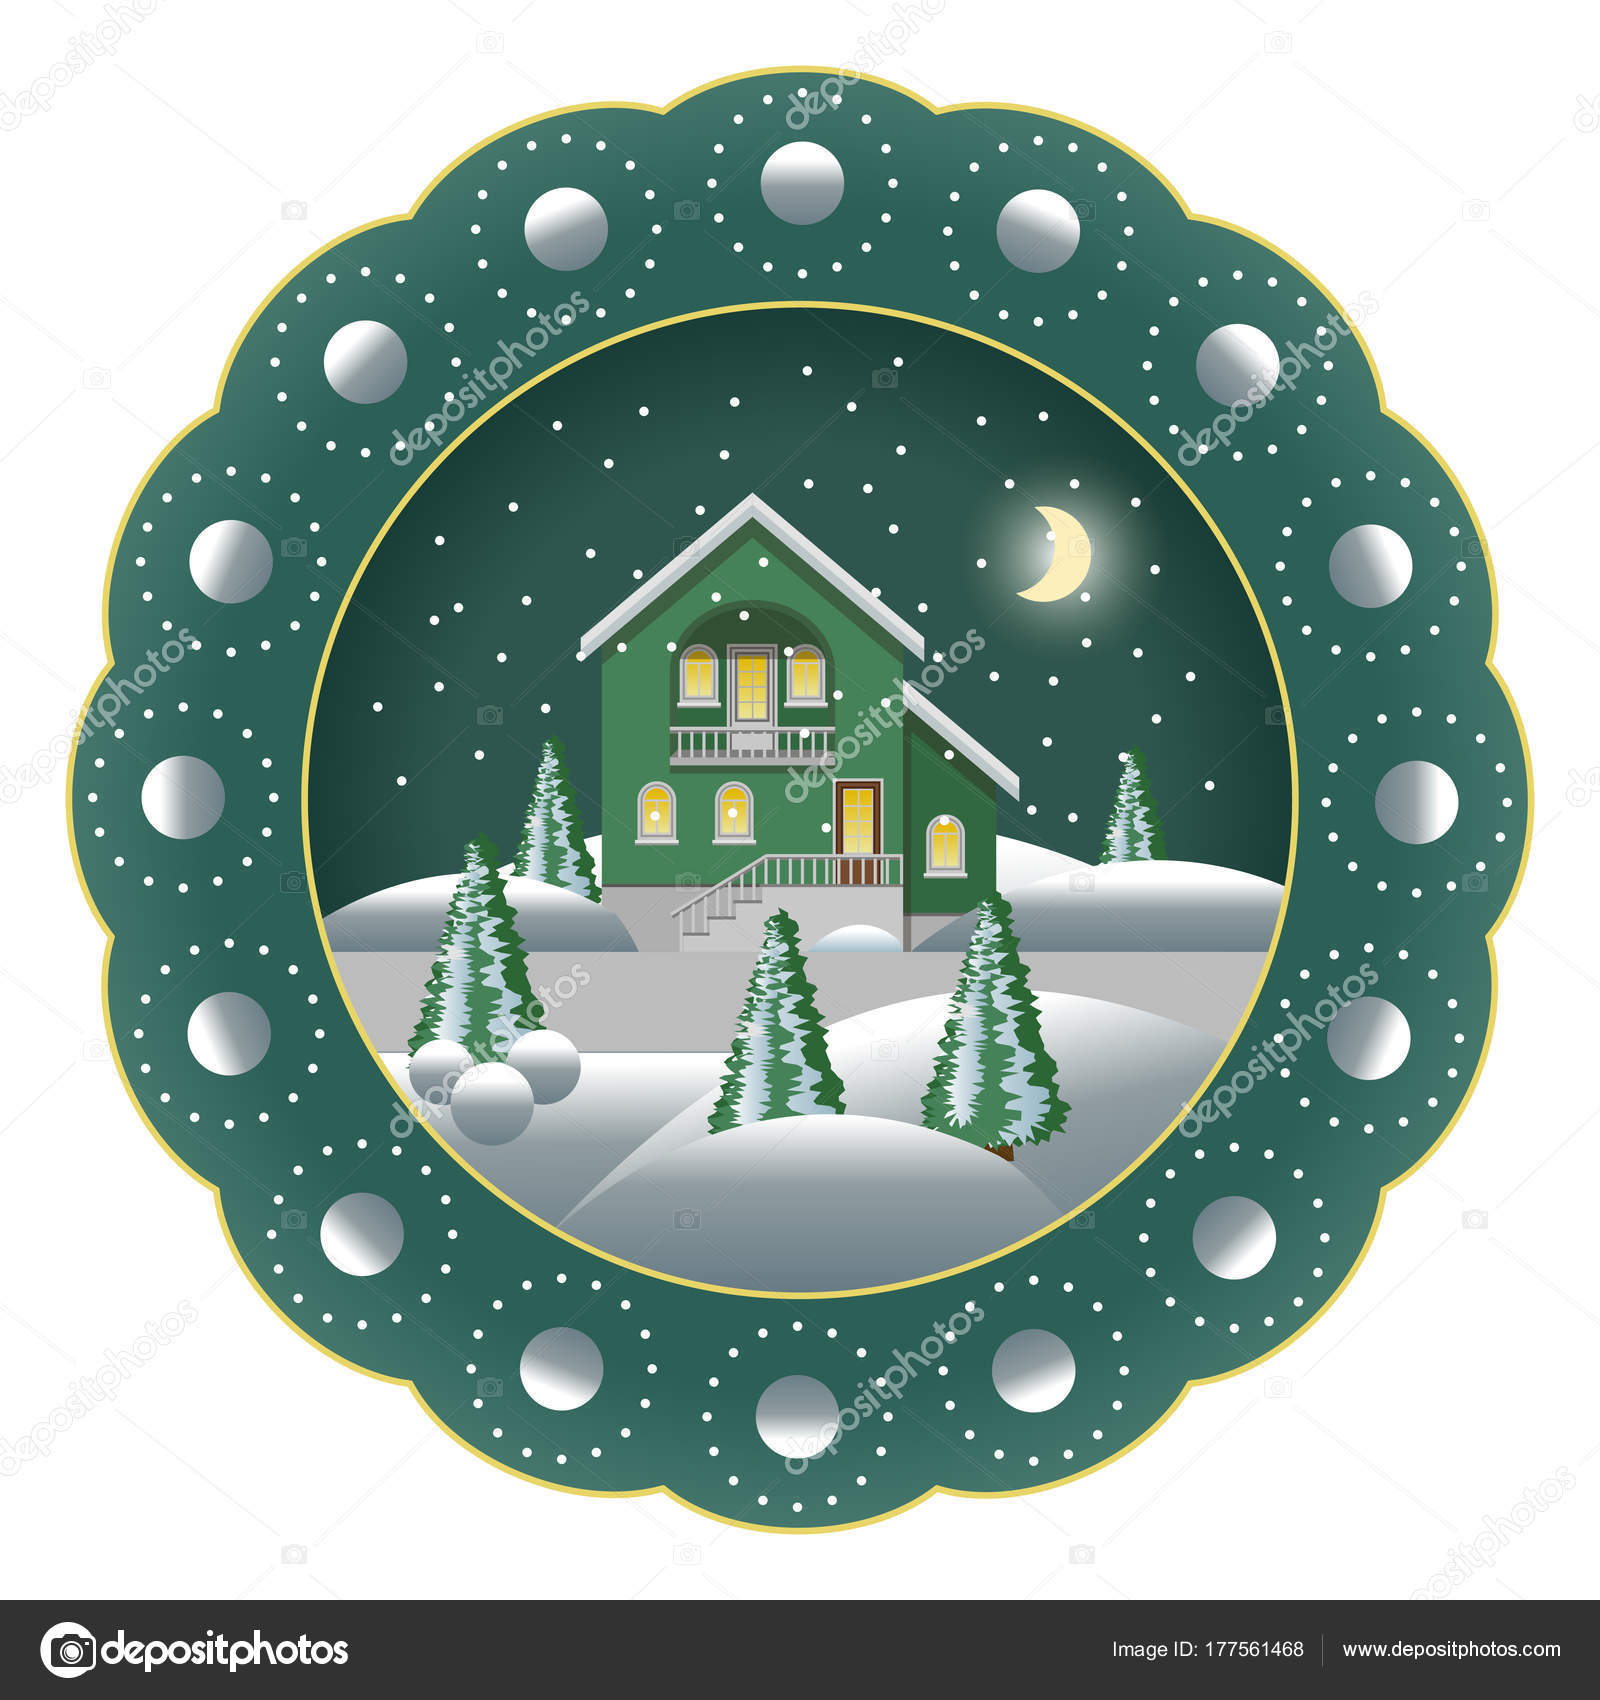 Decorative Christmas souvenir plate isolated. Porcelain plate painted with Christmas night winter landscape scene. Snow trees snowflakes house.  sc 1 st  Depositphotos & Decorative Christmas souvenir plate isolated. u2014 Stock Vector ...